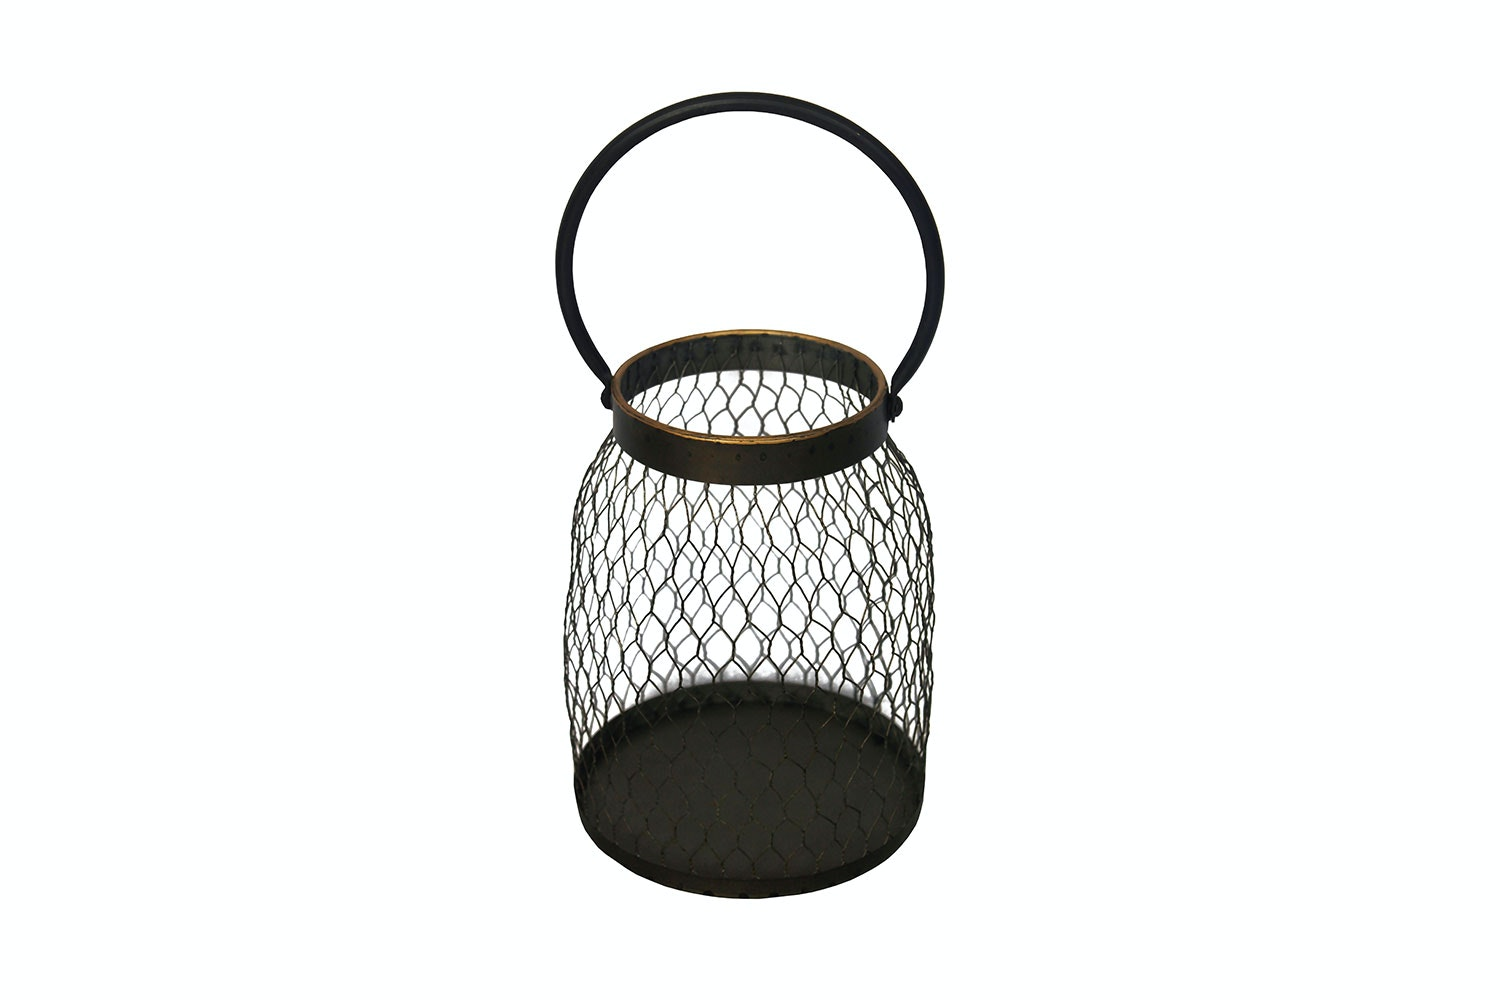 Metal Mesh lantern by Kerridge